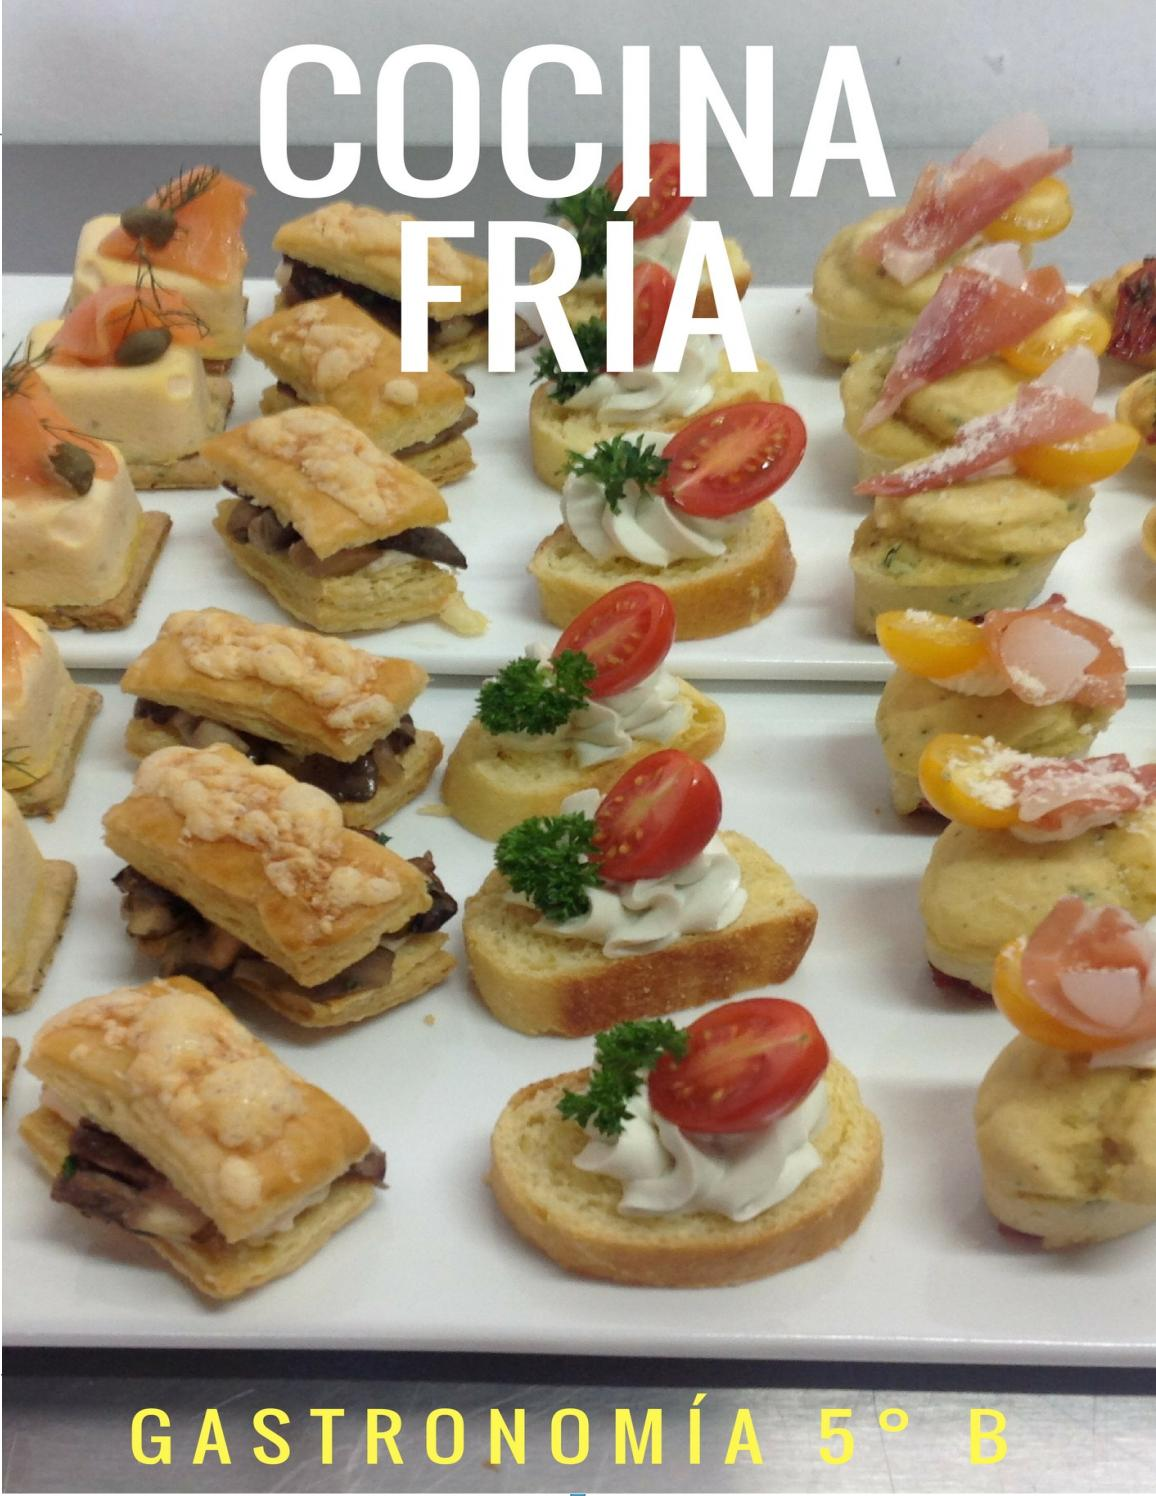 Cocina fr a by arturo hern ndez mart nez issuu for Platillos franceses faciles